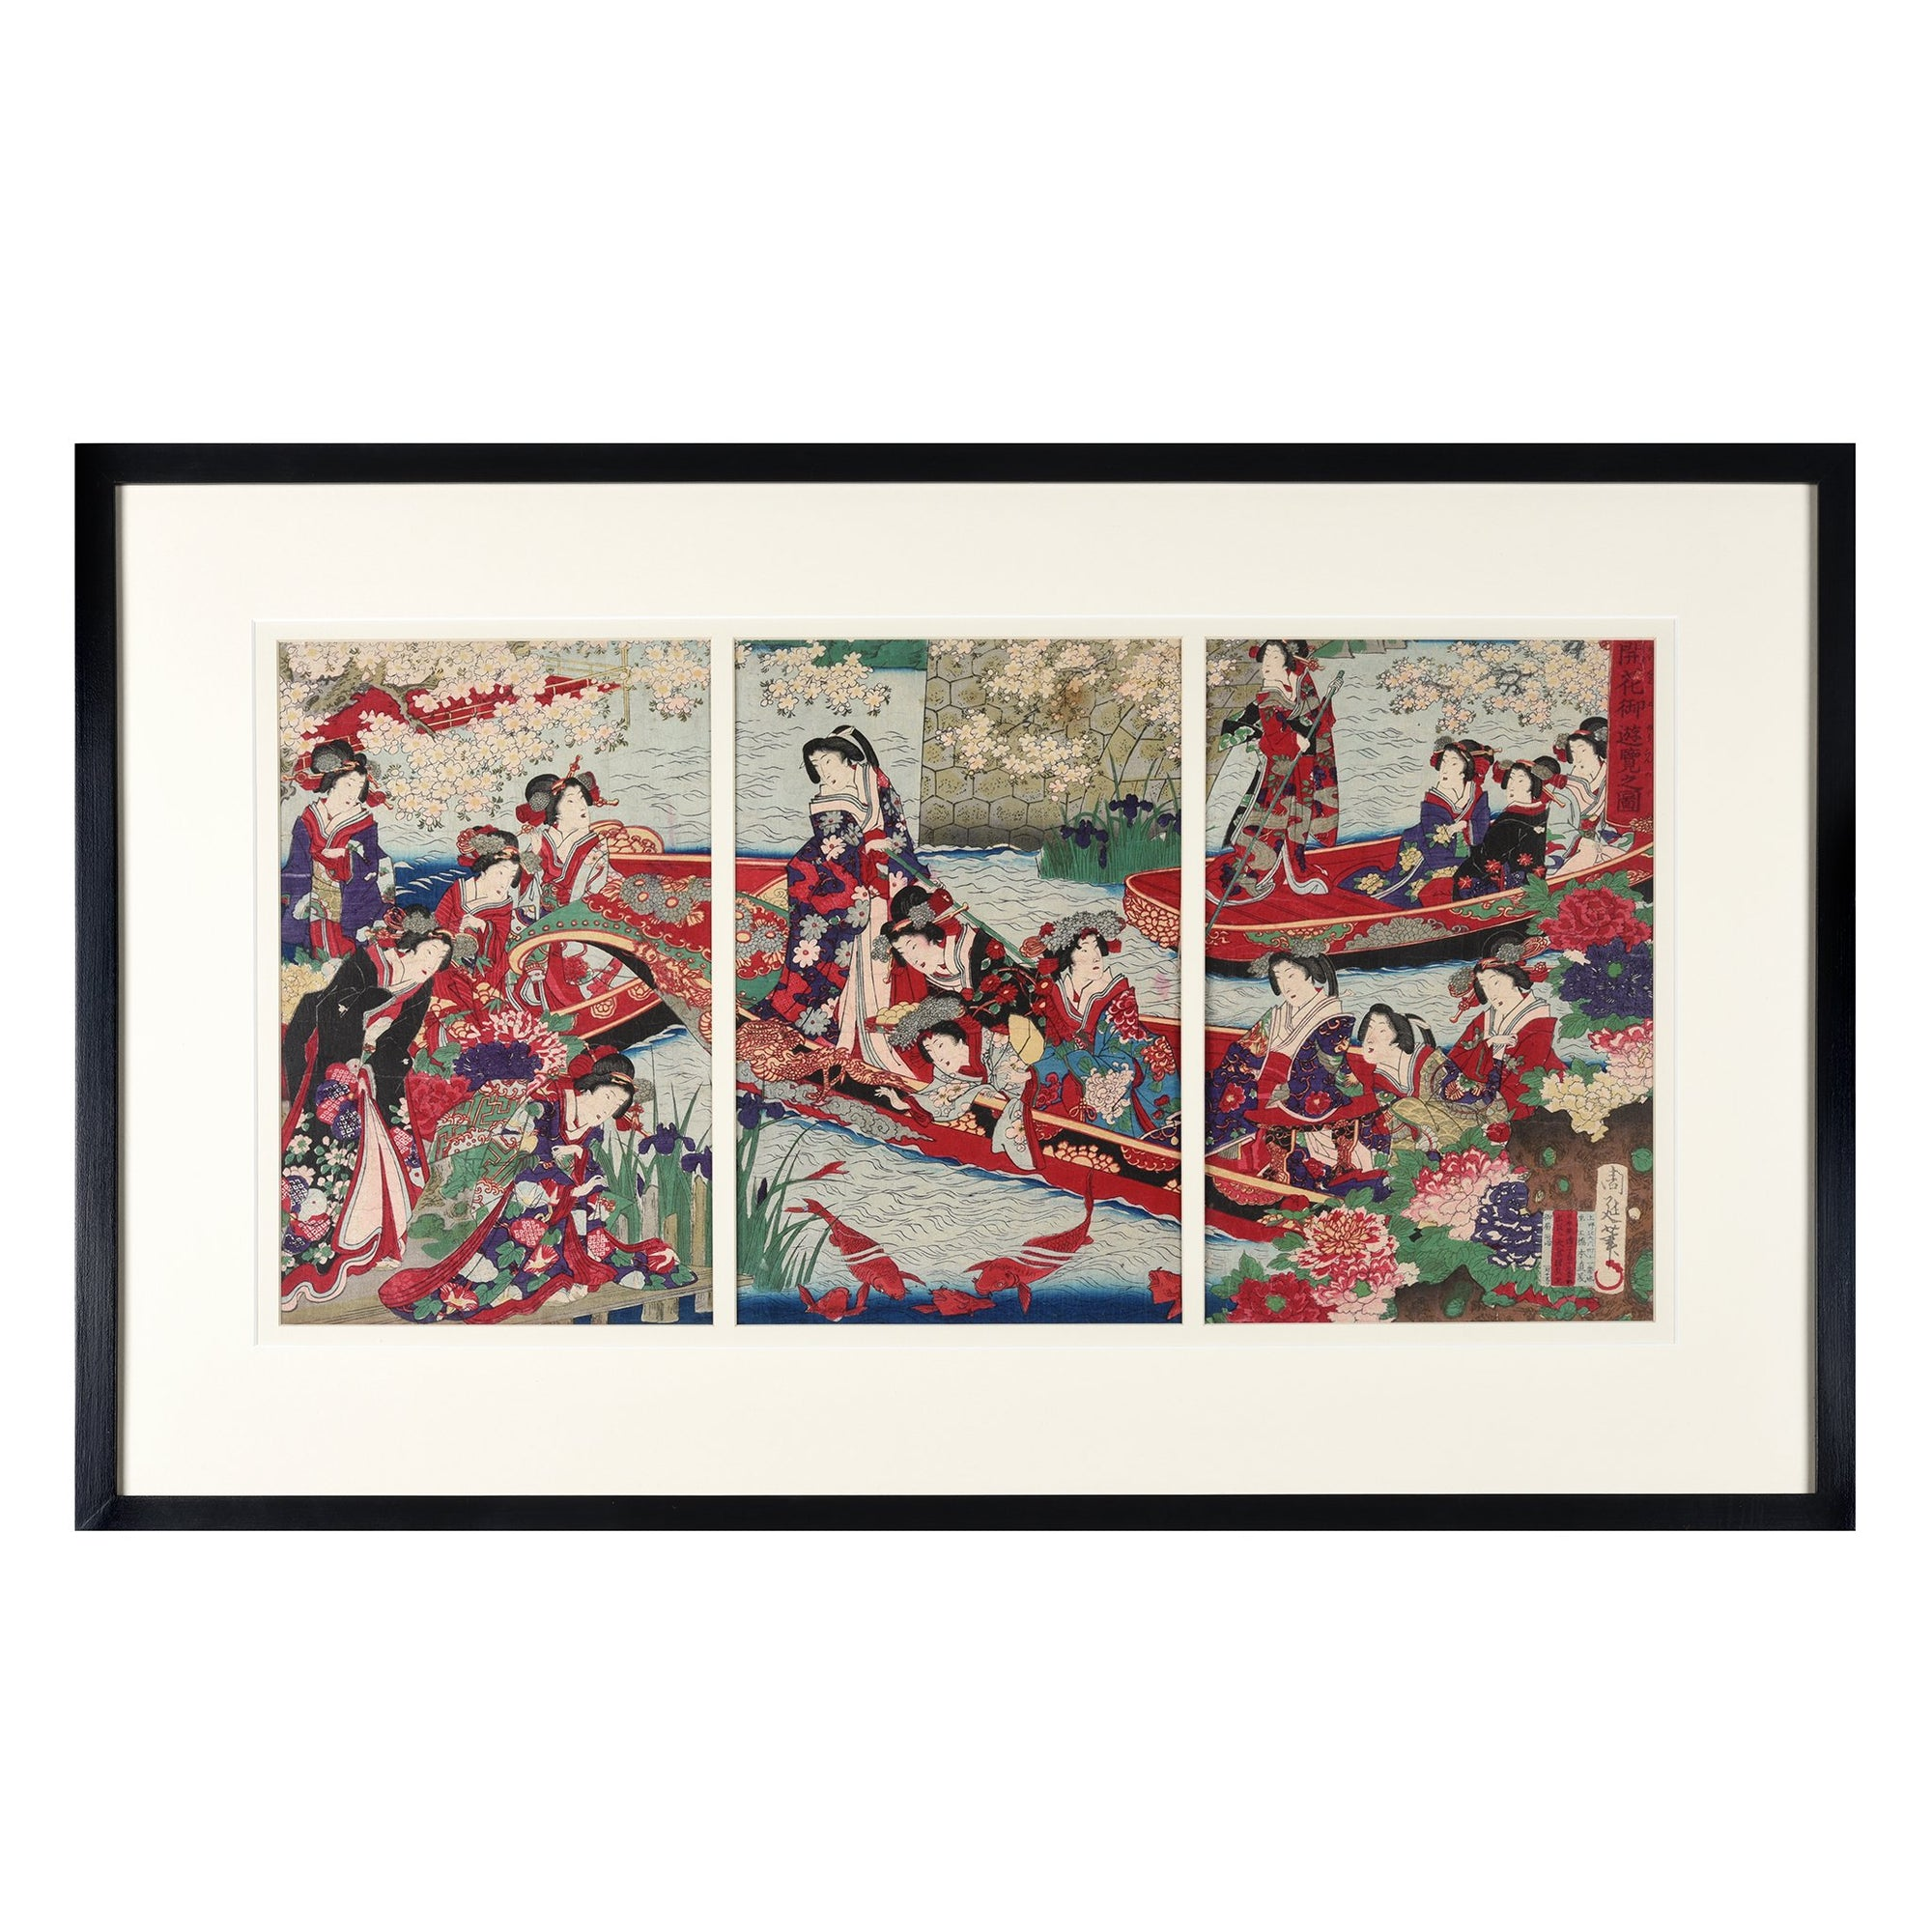 "Framed Original Triptych Japanese Woodblock Print of ""Meiji Empress on Pleasure Boat"" by Toyohara Chikanobu Ca 1890 